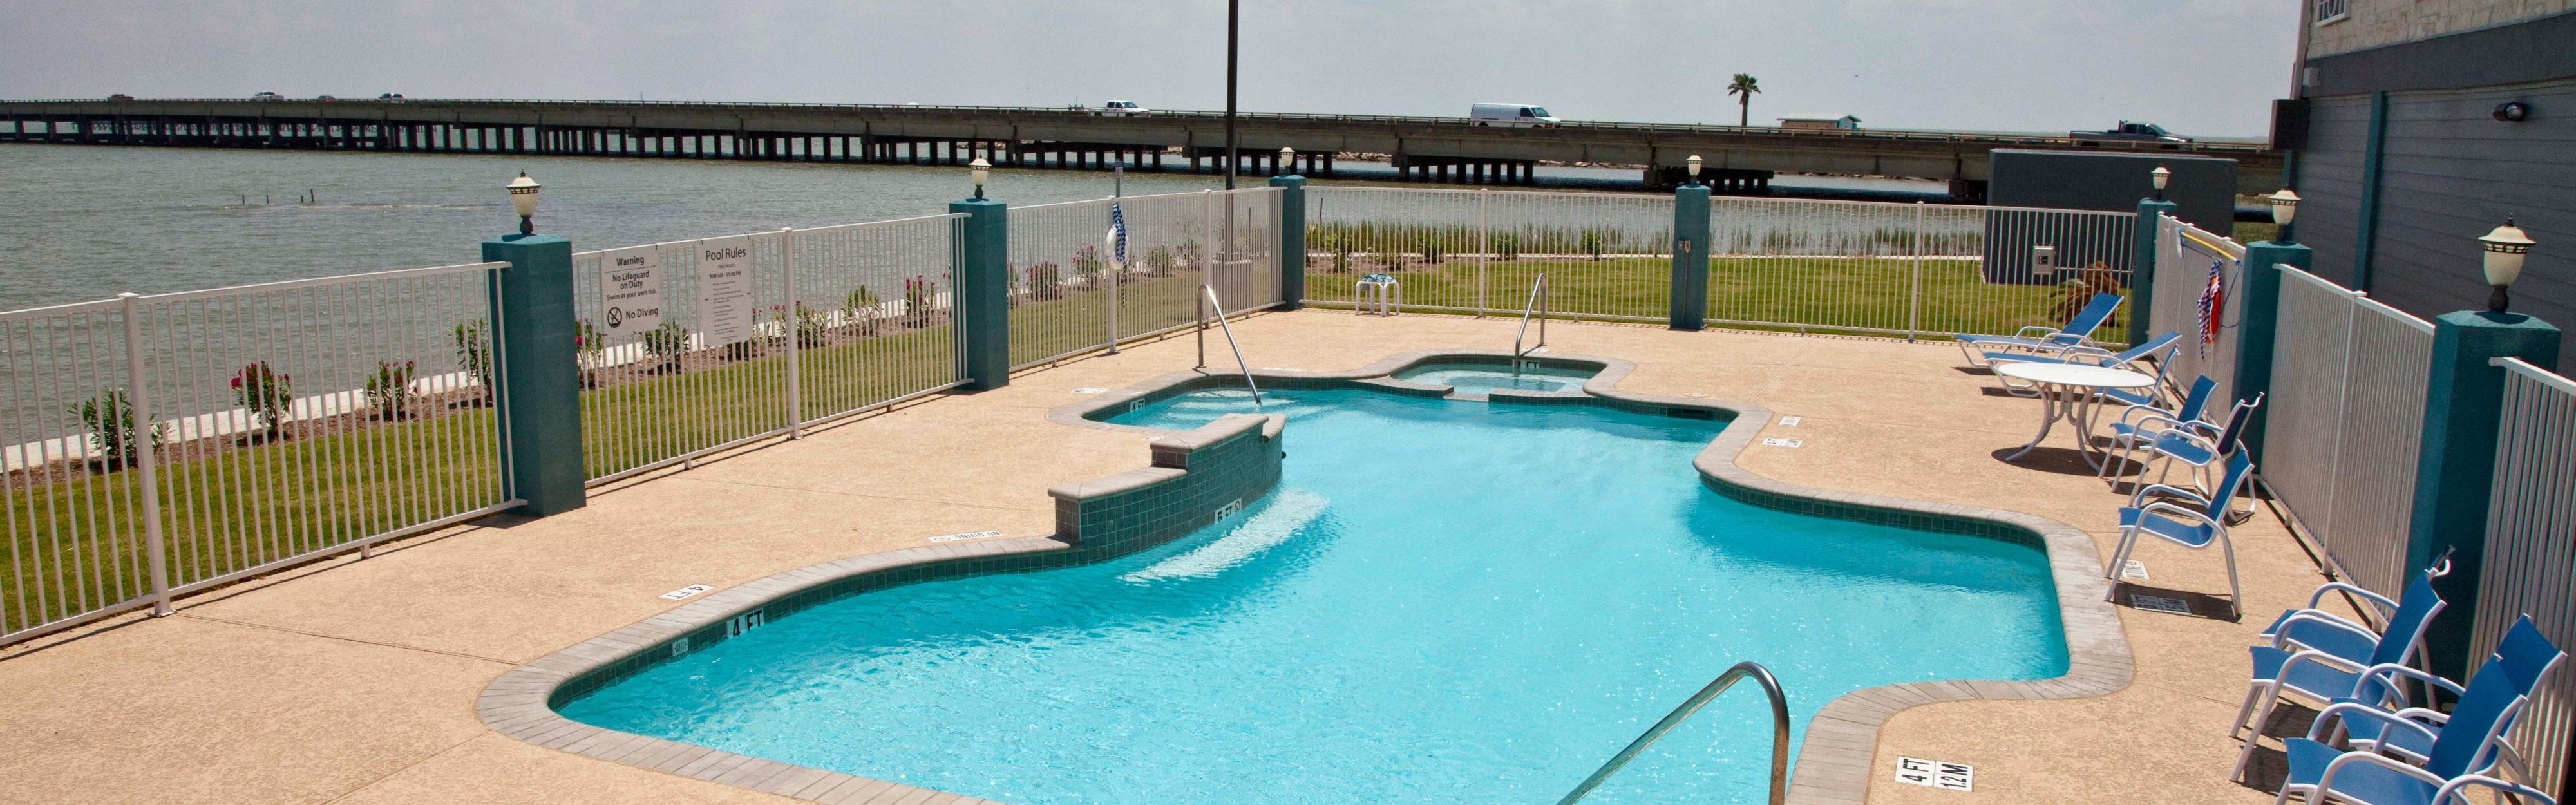 Holiday Inn Express & Suites Port Lavaca image 1